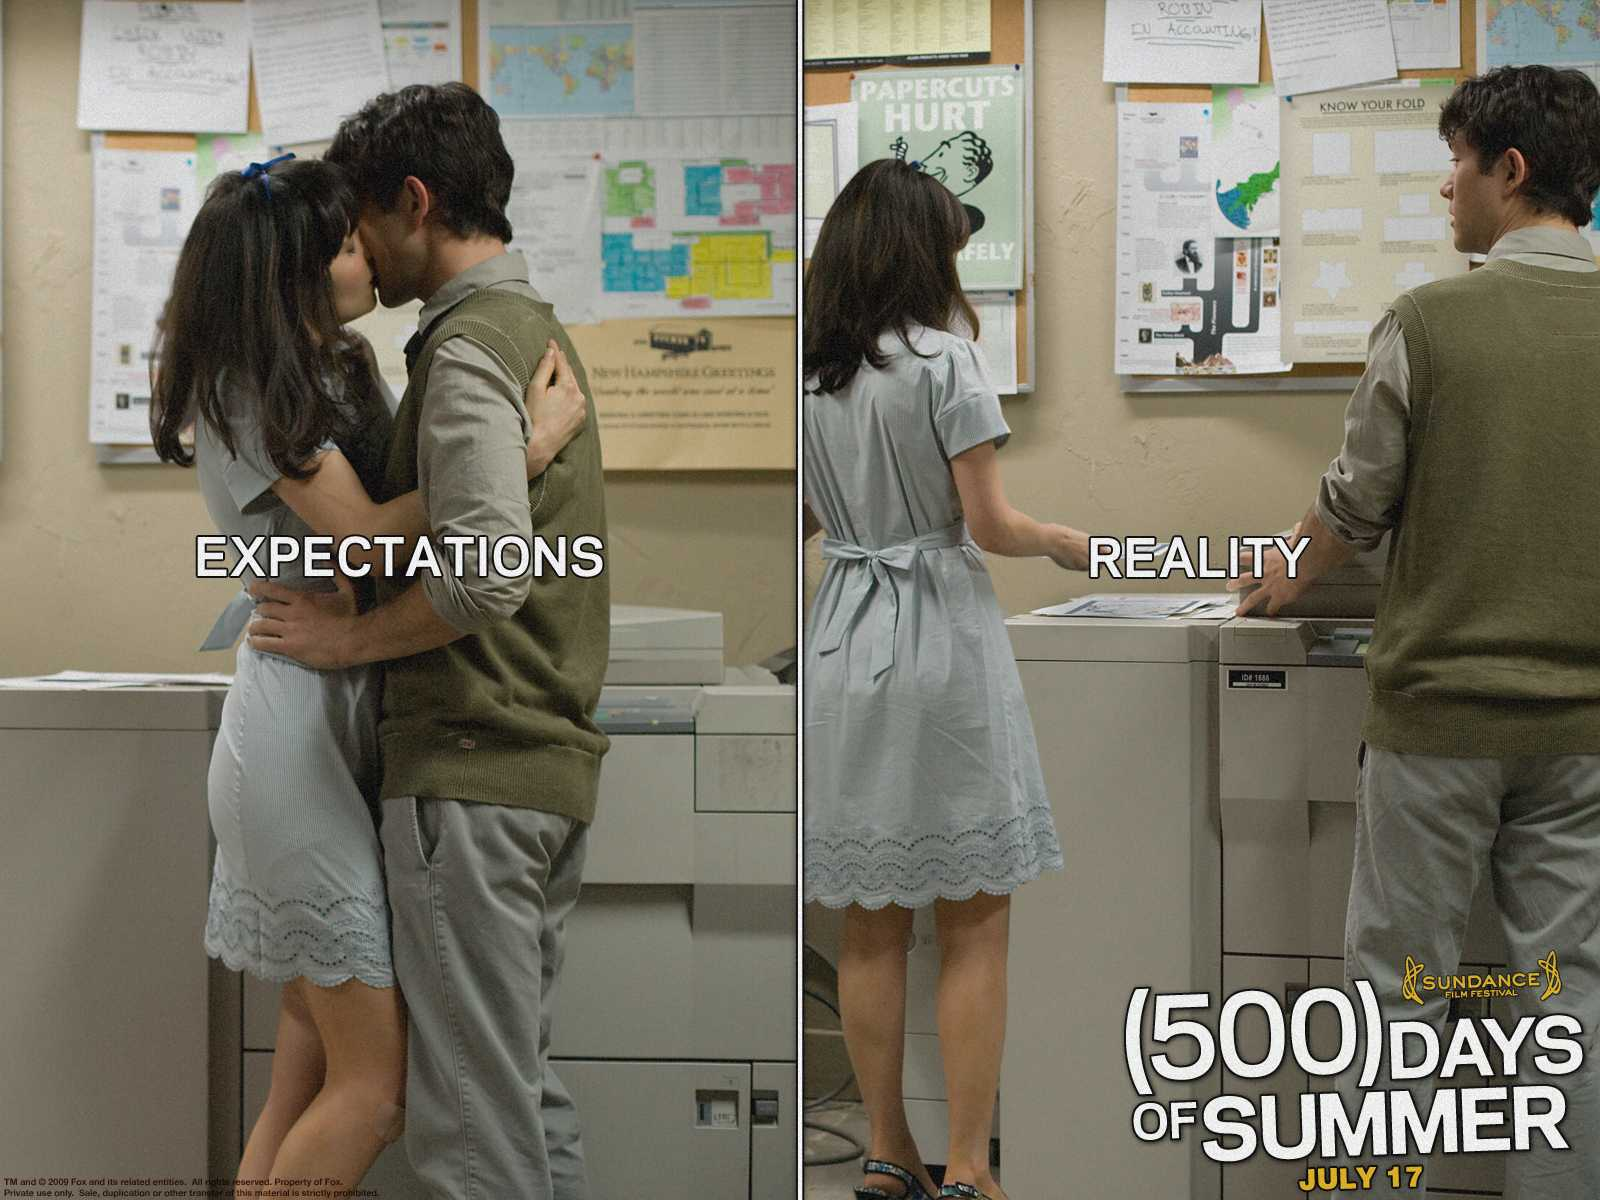 http://1.bp.blogspot.com/-odaGo77sO1g/TeMaH1RW14I/AAAAAAAAAJY/VkpRKecqLZE/s1600/2009_500_days_of_summer_wallpaper_004.jpg